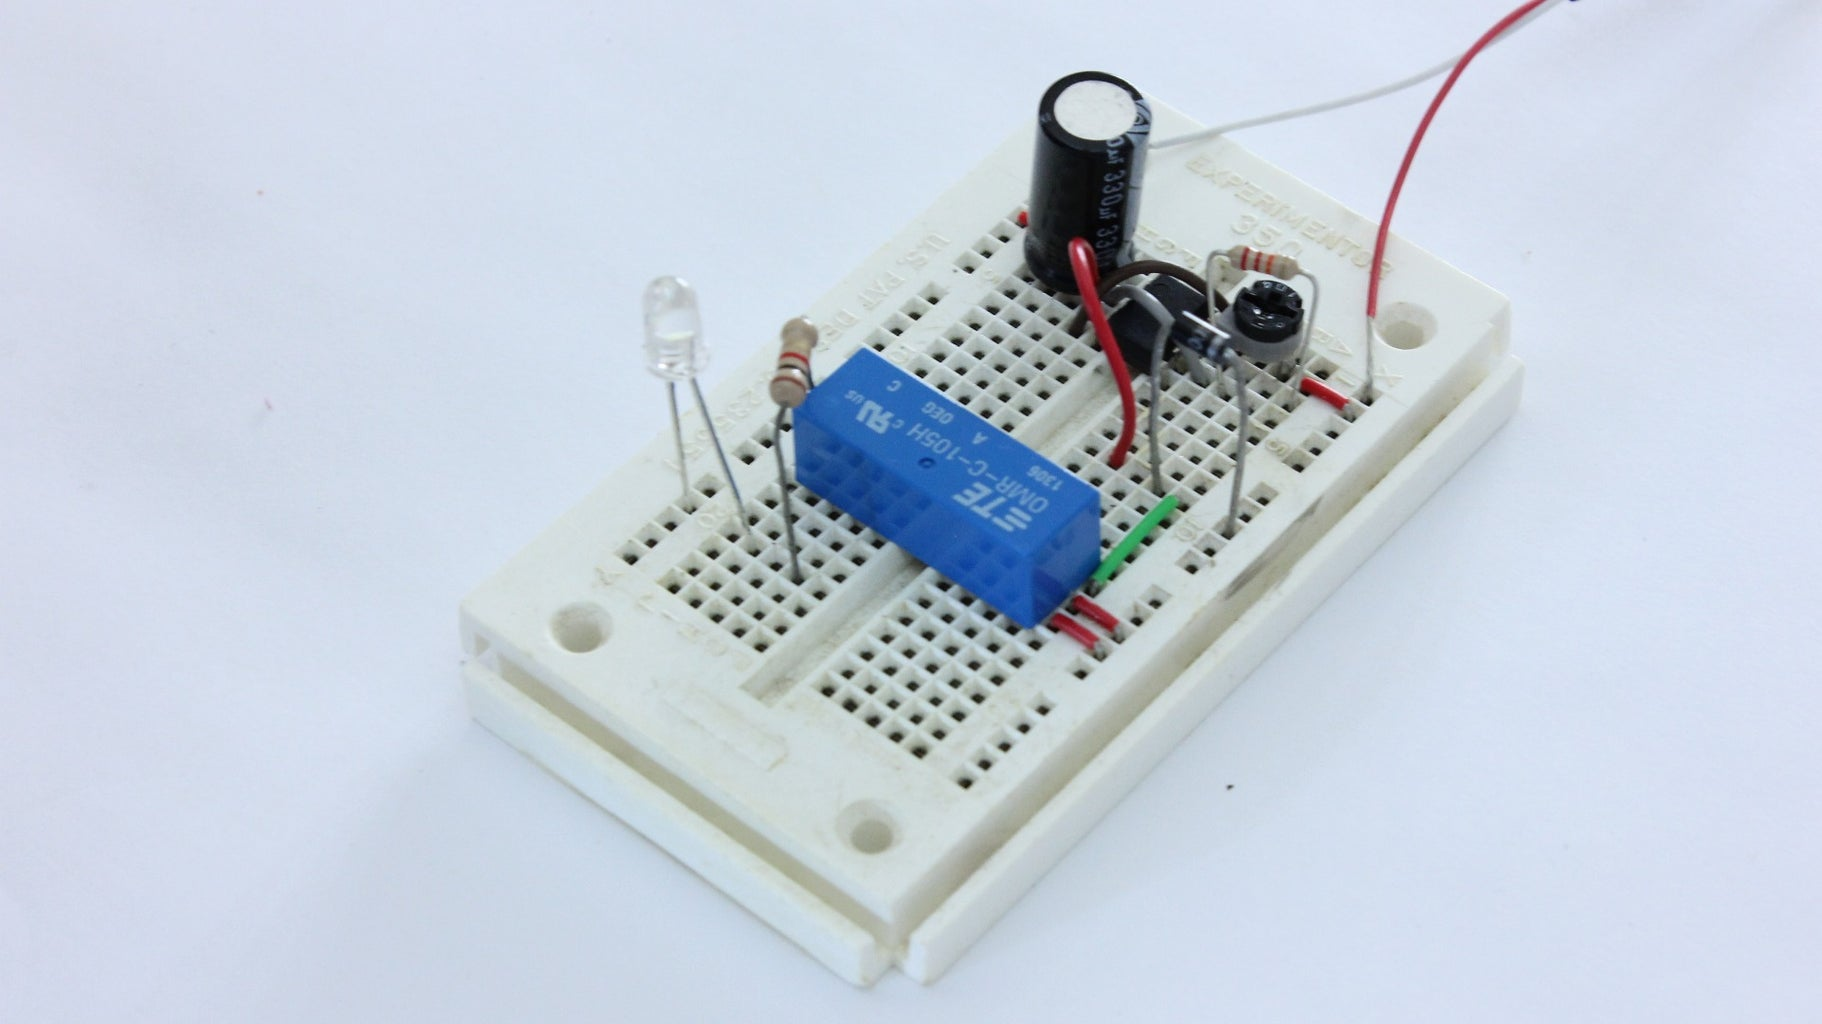 Prototype the Circuit on a Breadboard